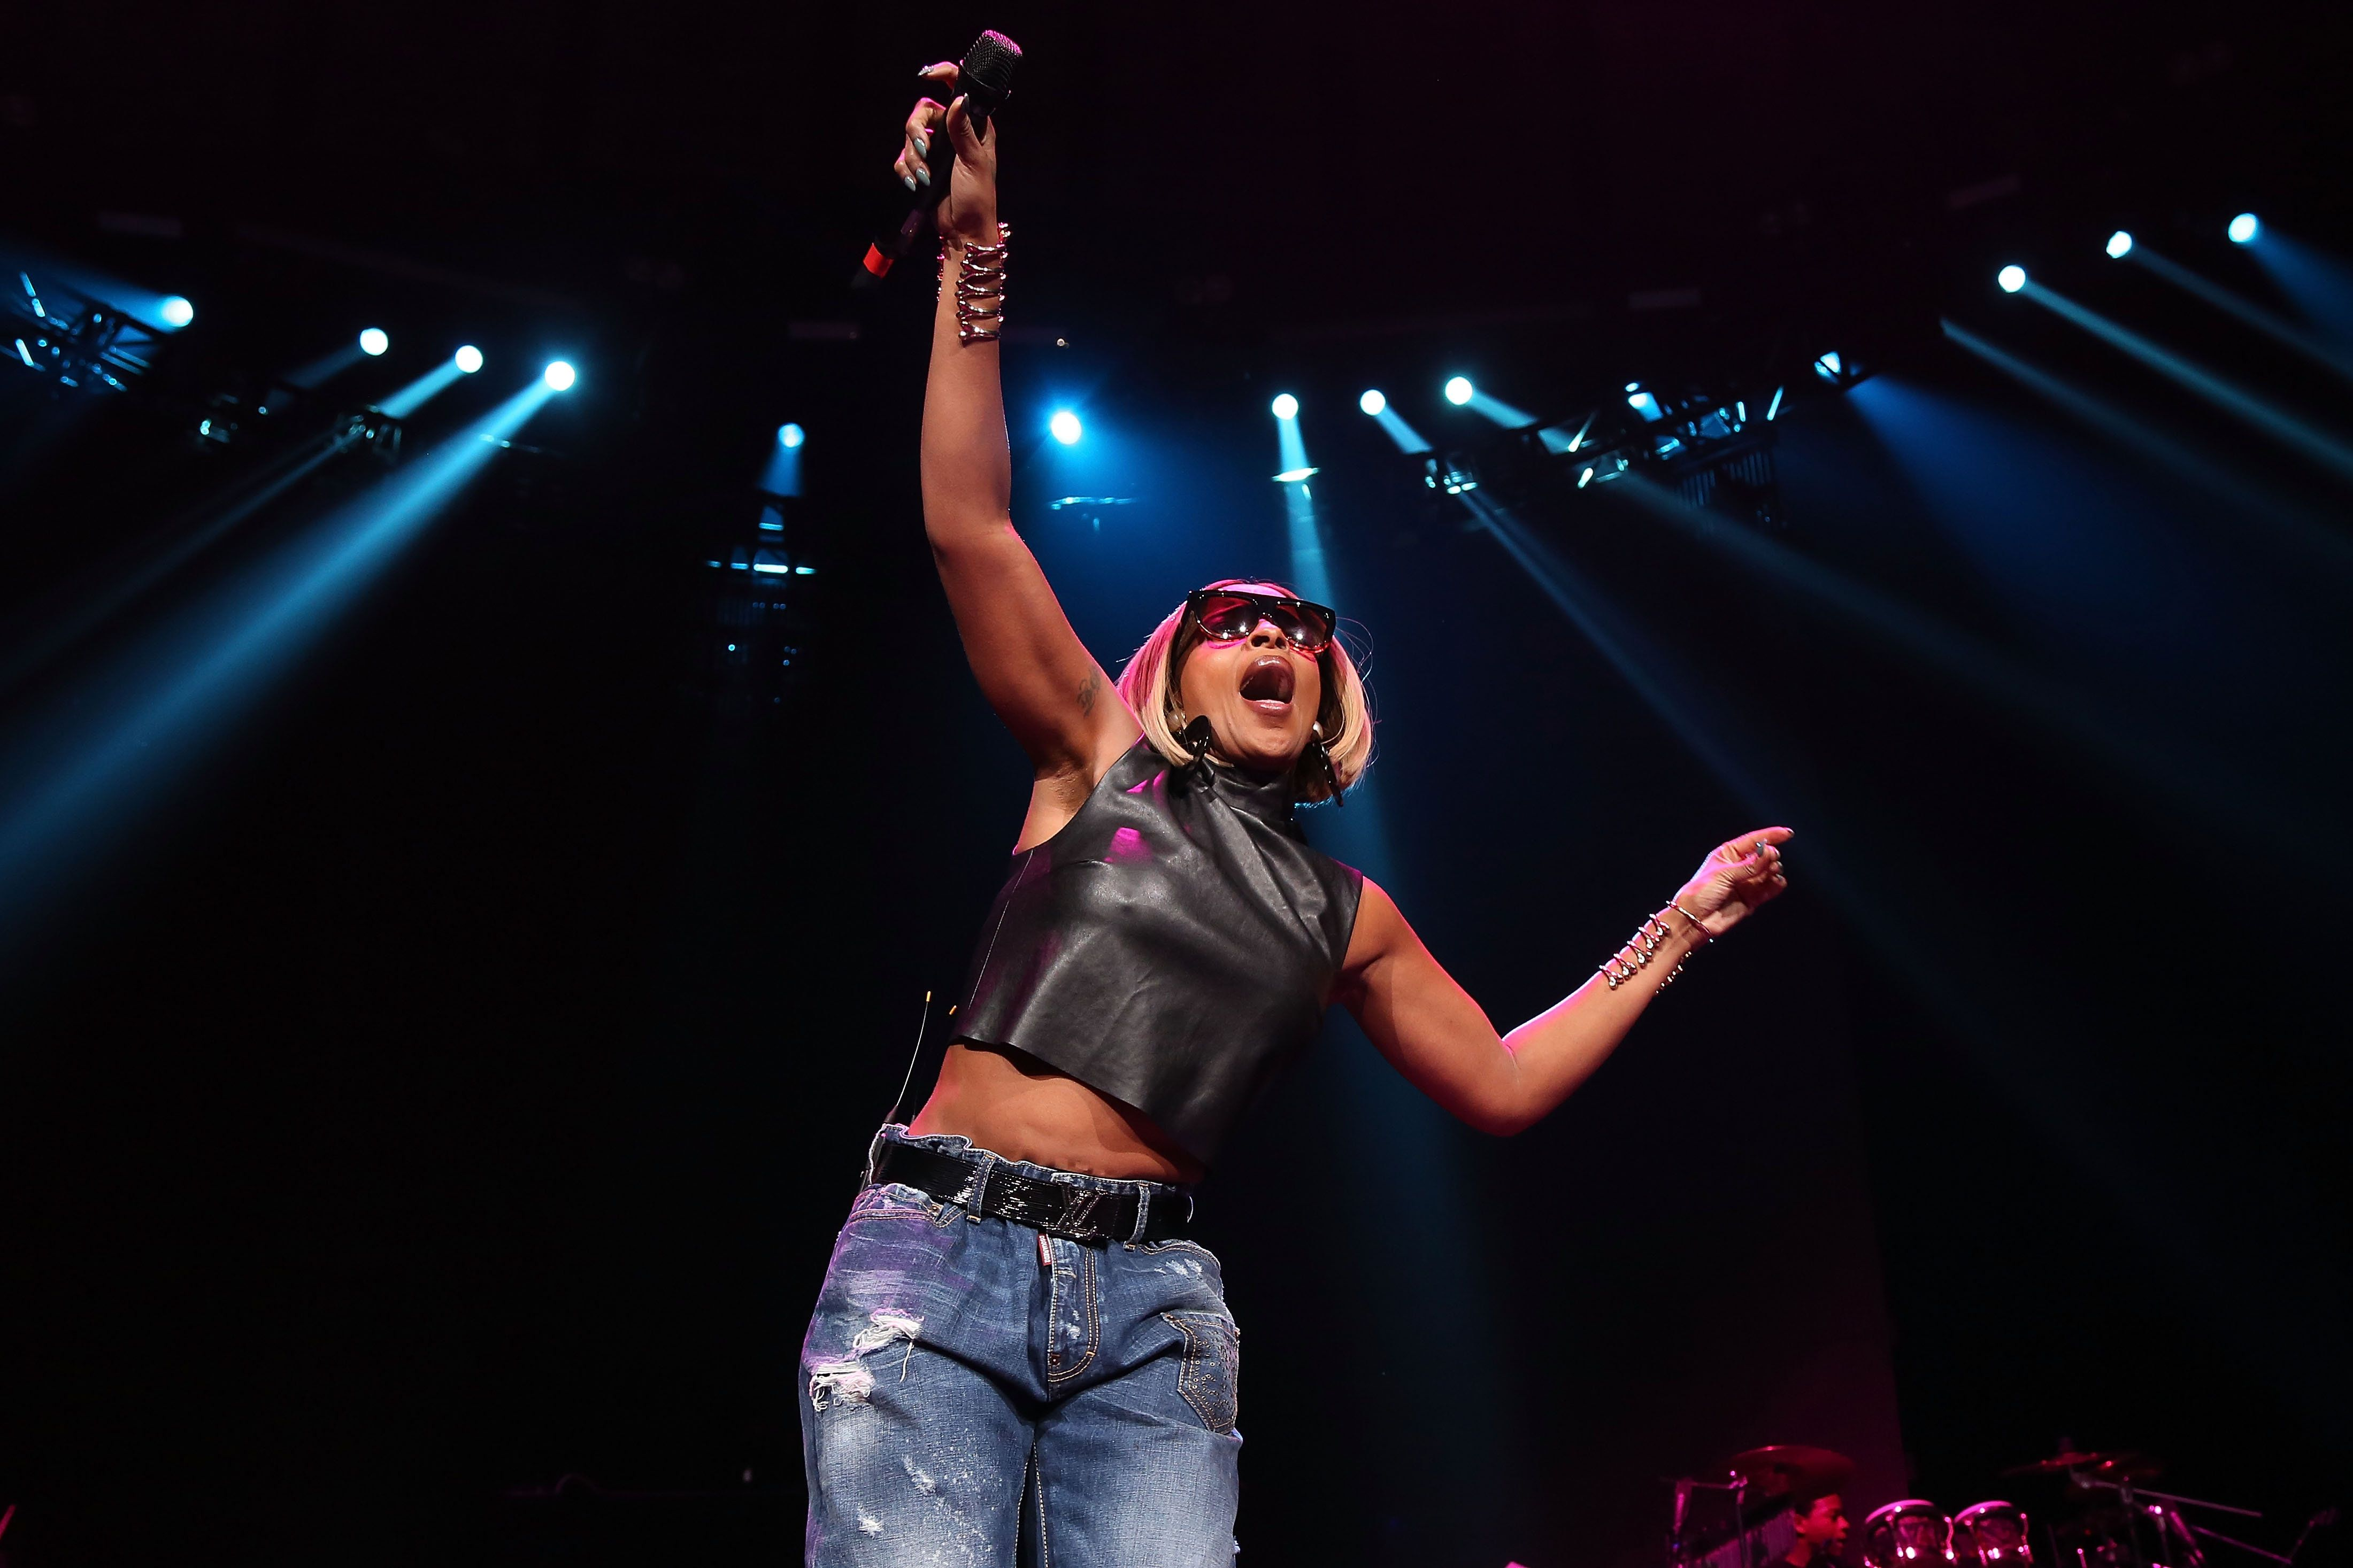 NEWARK, NJ - DECEMBER 05:  Mary J. Blige performs during Hot 97's 'Busta Rhymes And Friends: Hot For The Holidays' at Prudential Center on December 5, 2015 in Newark, New Jersey.  (Photo by Taylor Hill/FilmMagic)